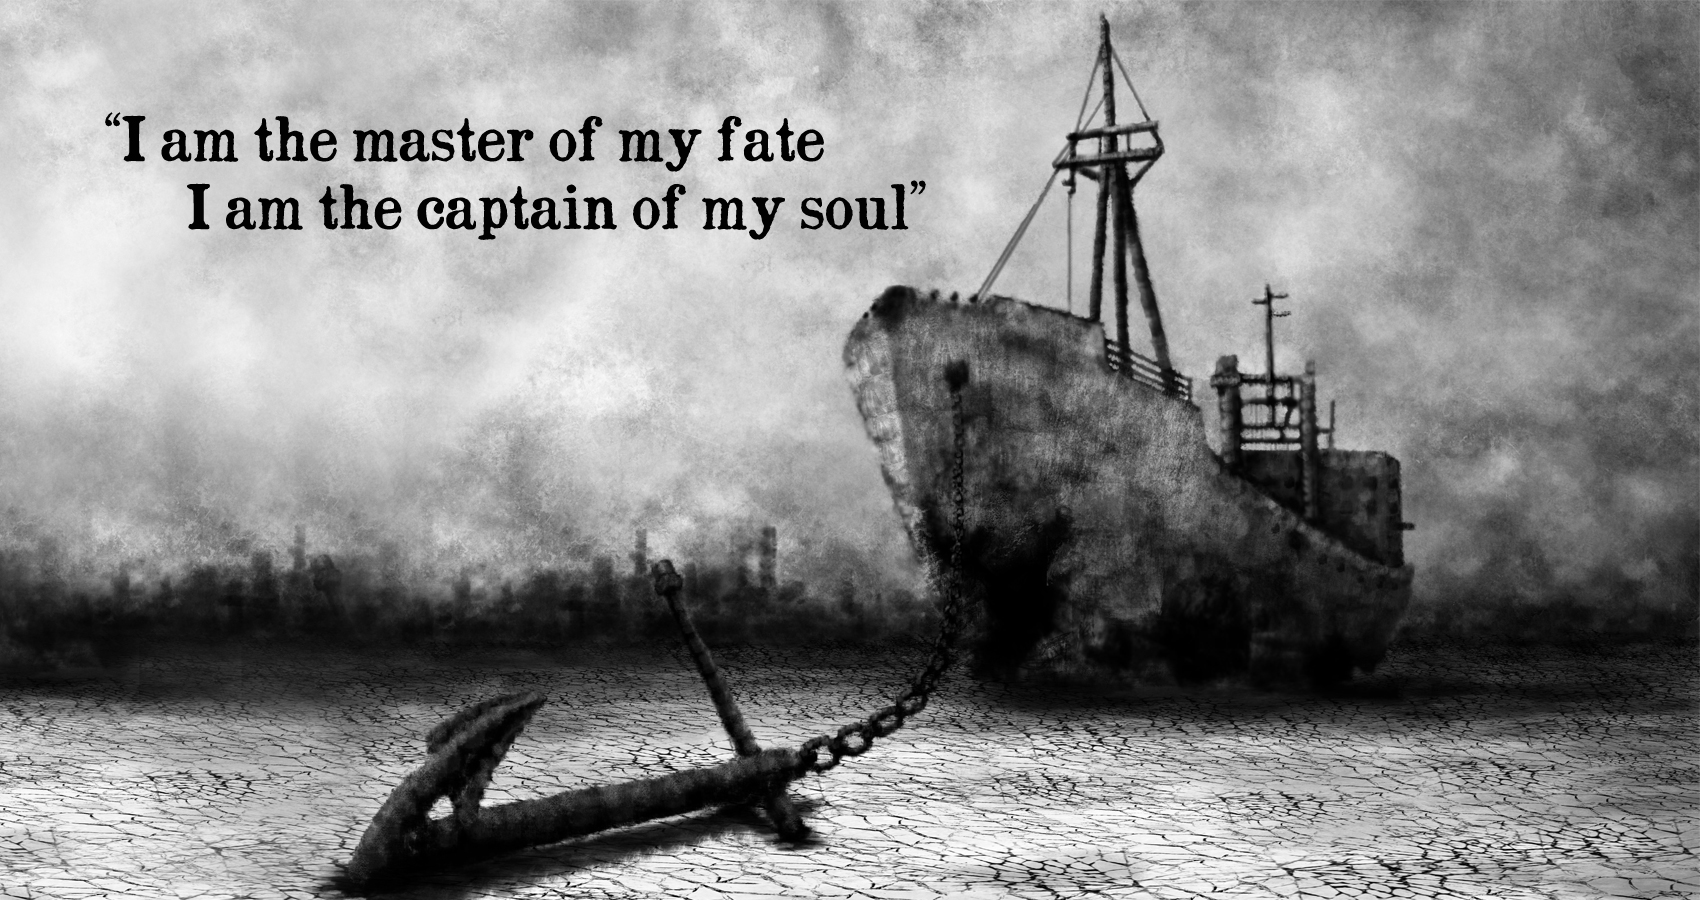 Invictus by William Ernest Henley at Spillwords.com